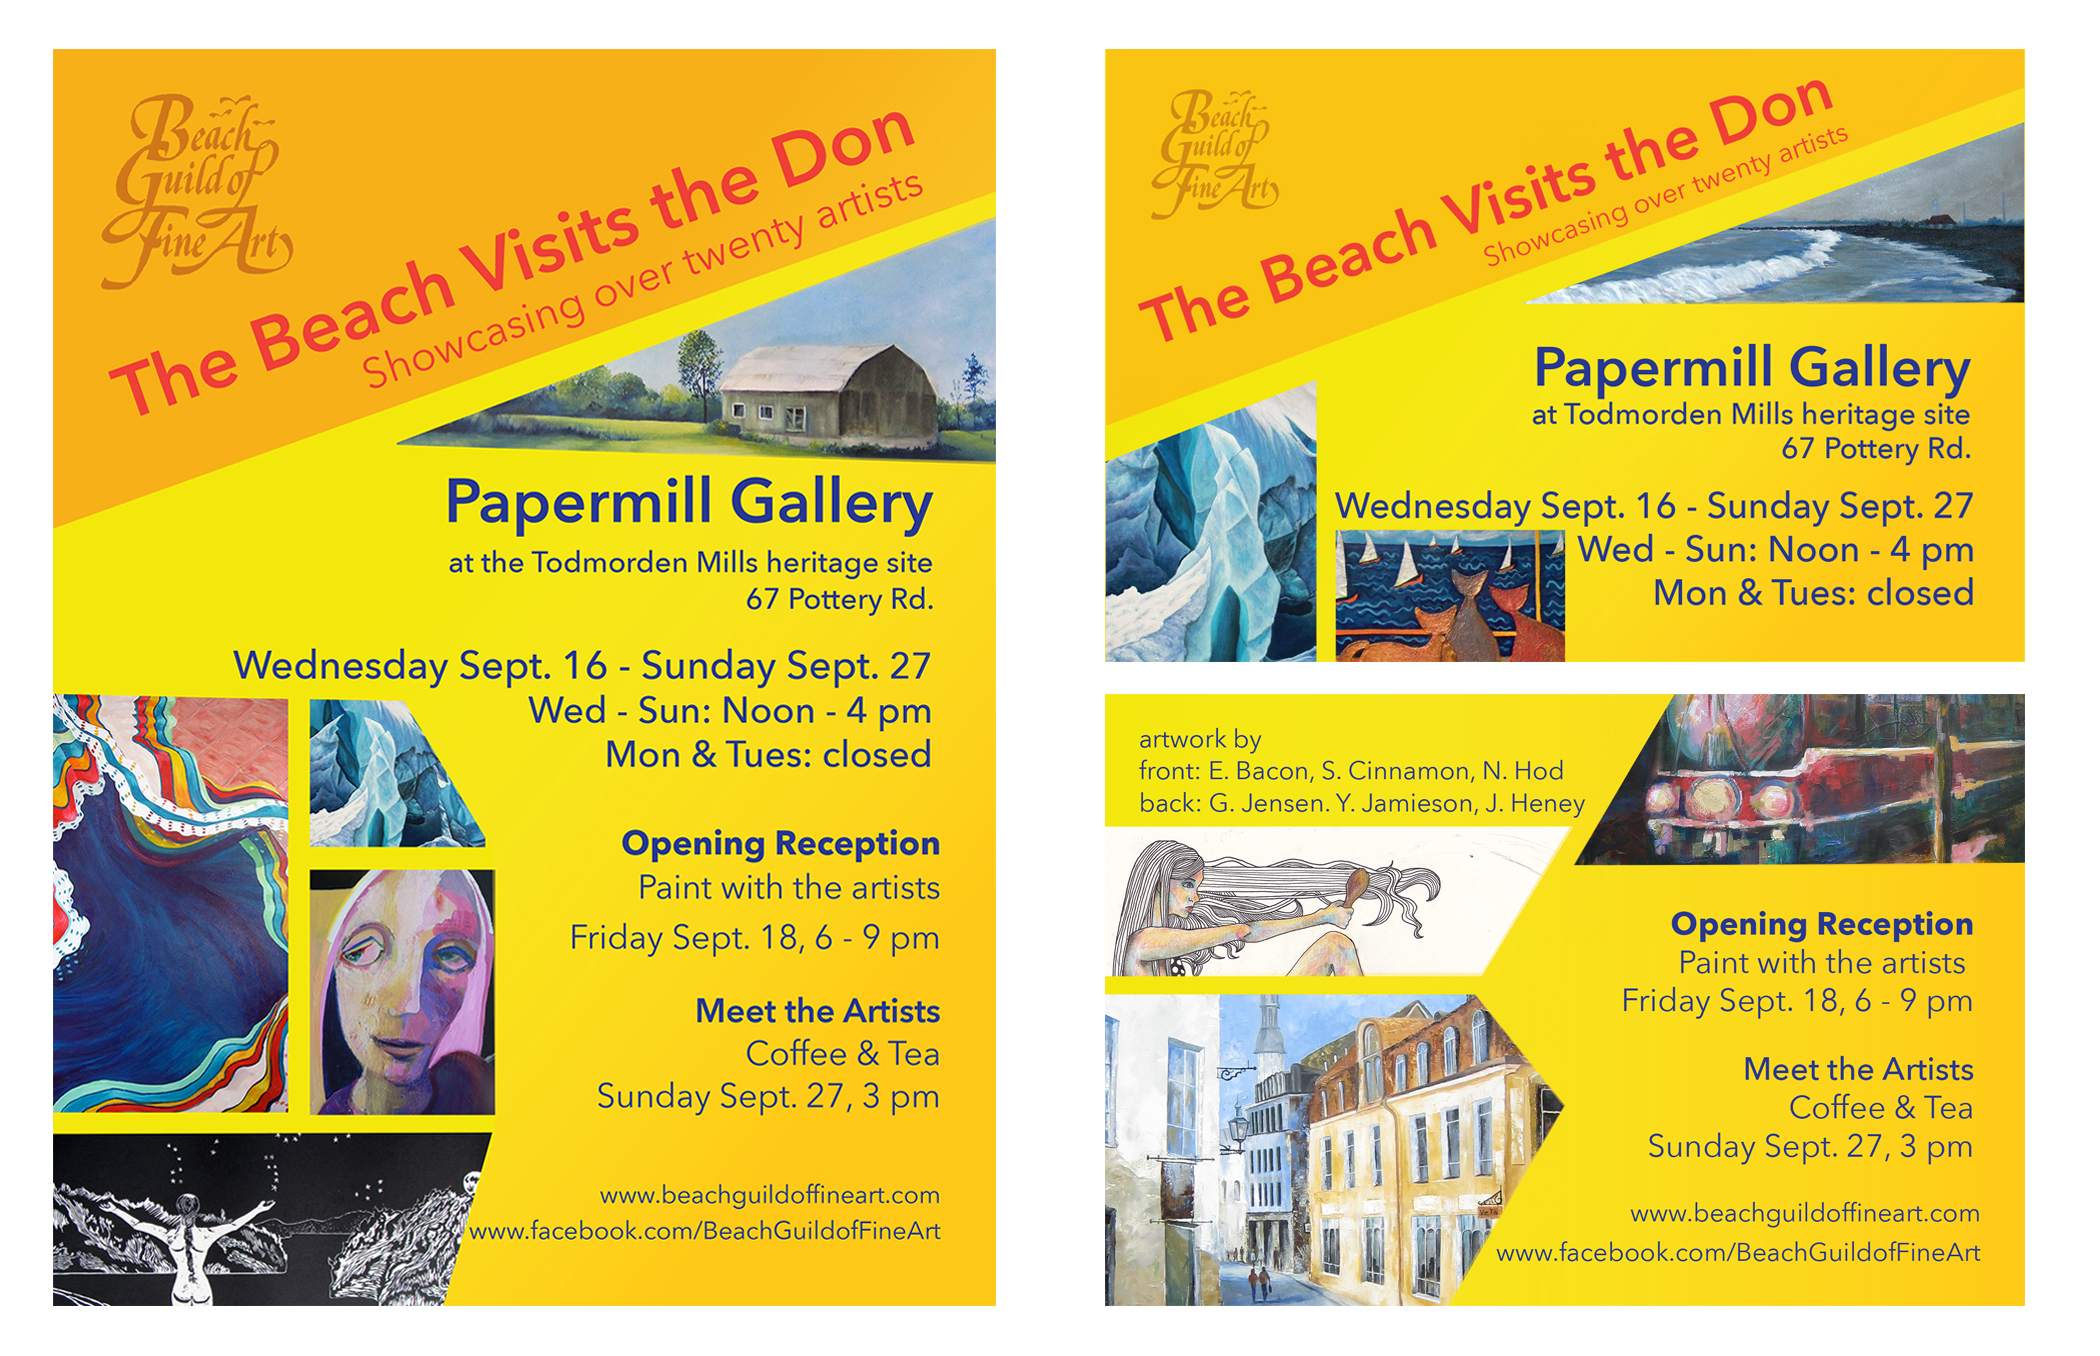 As part of her work with the Beach Guild of Fine Art Jordana does the graphic design for all of the guild's printed posters, postcards, flyers, and e-vites related to their art shows.